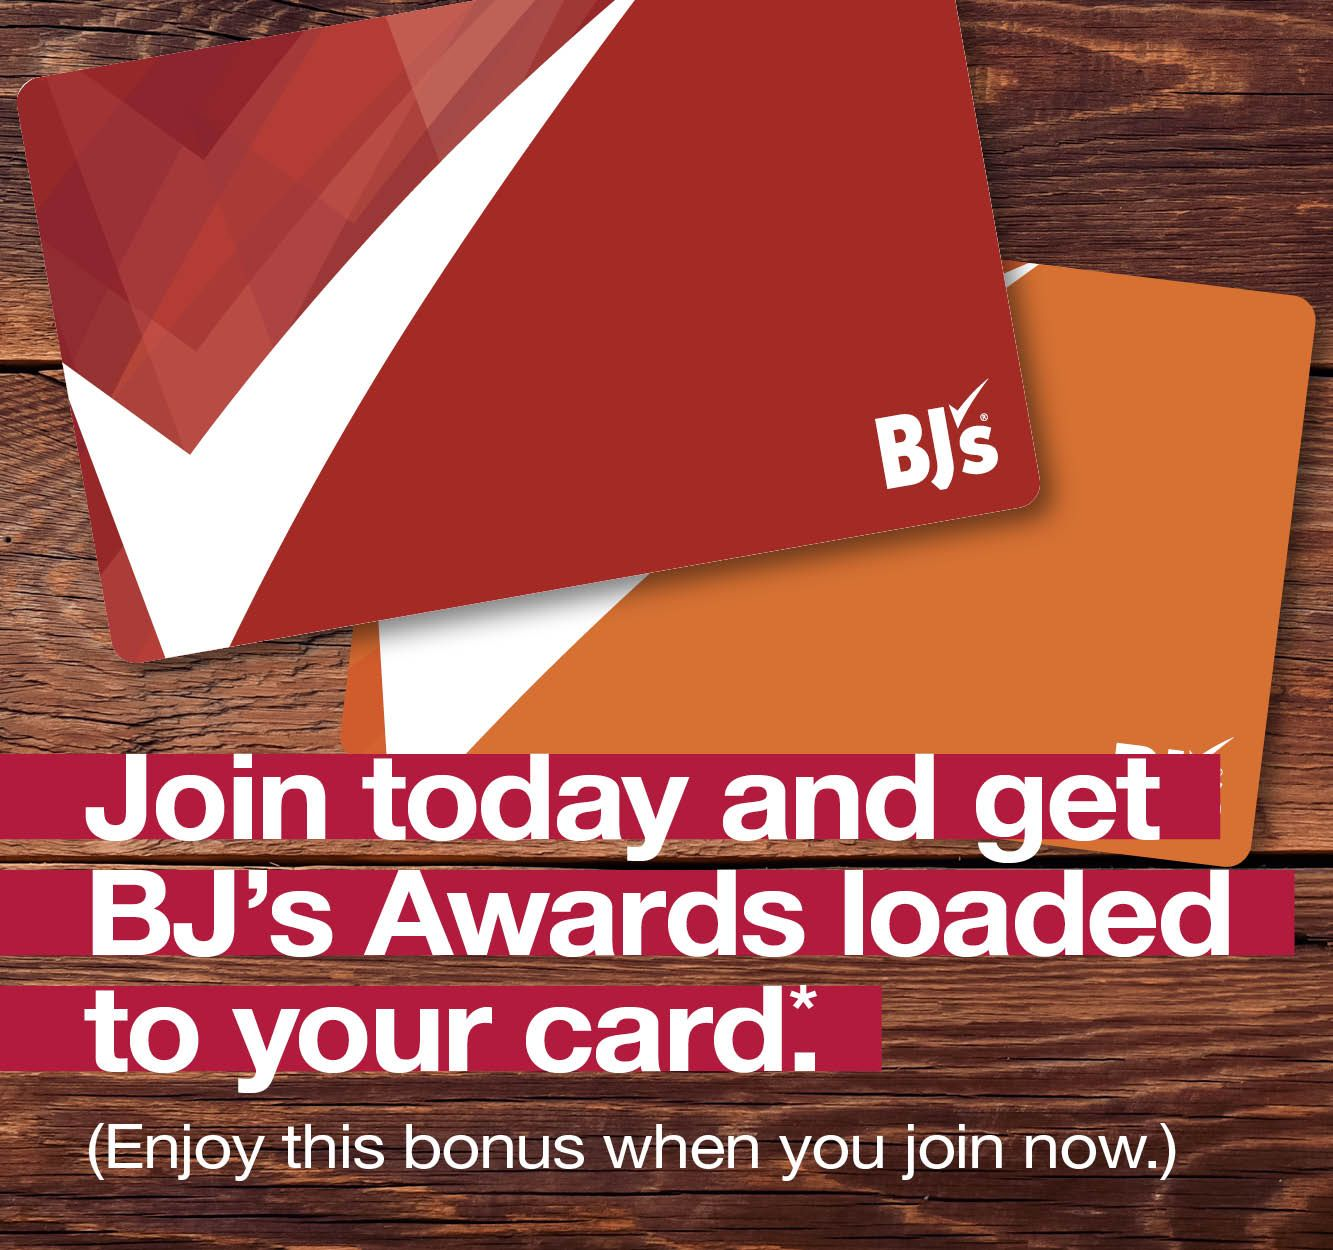 Join today and get a BJ's Awards.